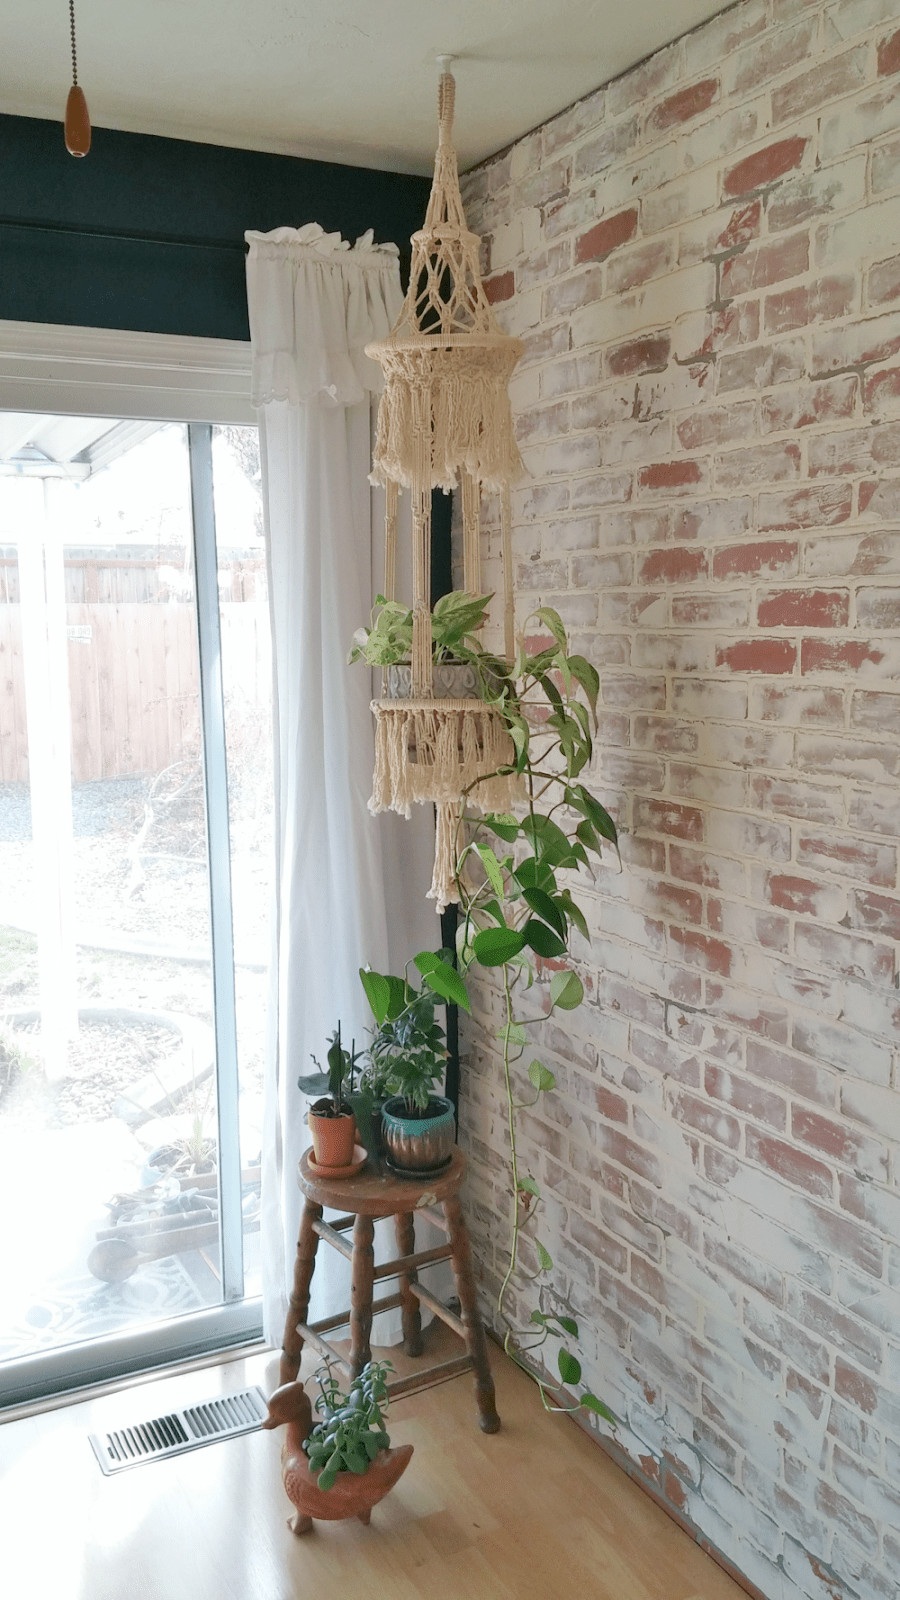 Best ideas about DIY Faux Brick Wall . Save or Pin Faux Brick Wall With German Smear Easy DIY to Add Brick Now.